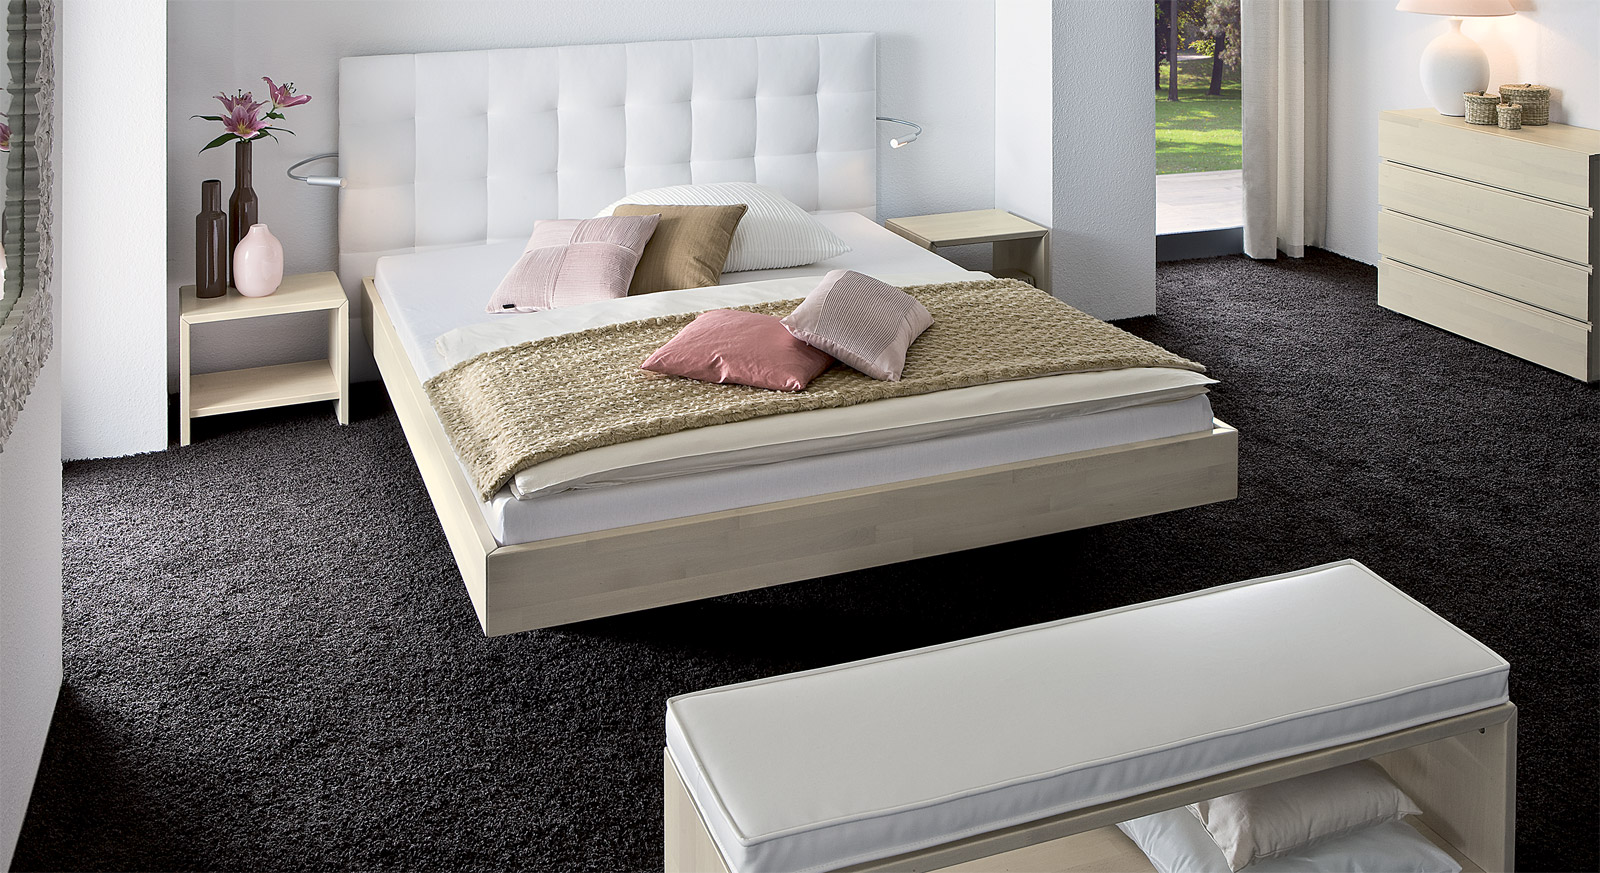 massivholzbett mit wandpaneel als hohes kopfteil bianco. Black Bedroom Furniture Sets. Home Design Ideas